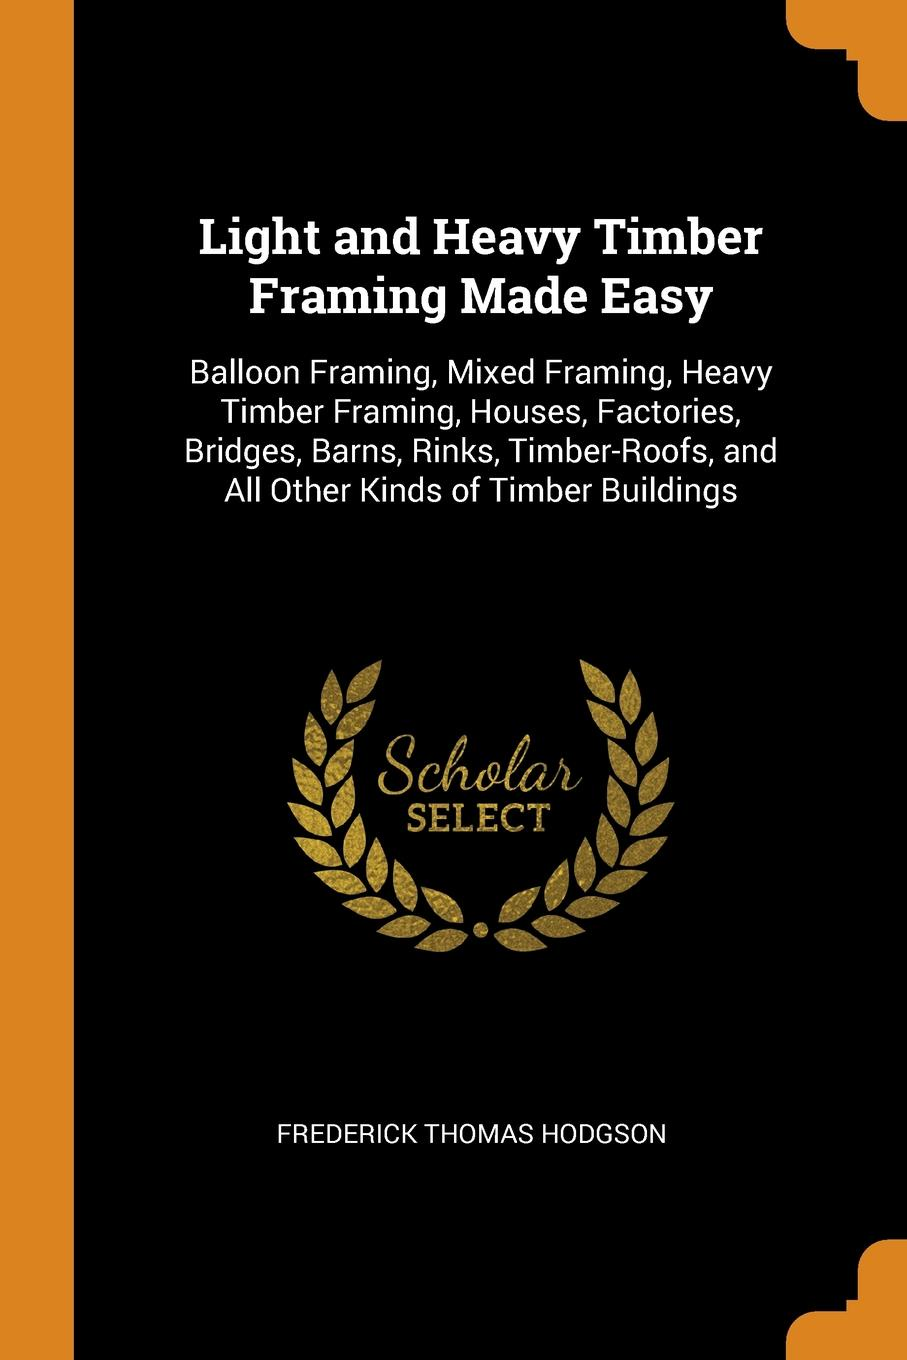 Frederick Thomas Hodgson Light and Heavy Timber Framing Made Easy. Balloon Framing, Mixed Framing, Heavy Timber Framing, Houses, Factories, Bridges, Barns, Rinks, Timber-Roofs, and All Other Kinds of Timber Buildings